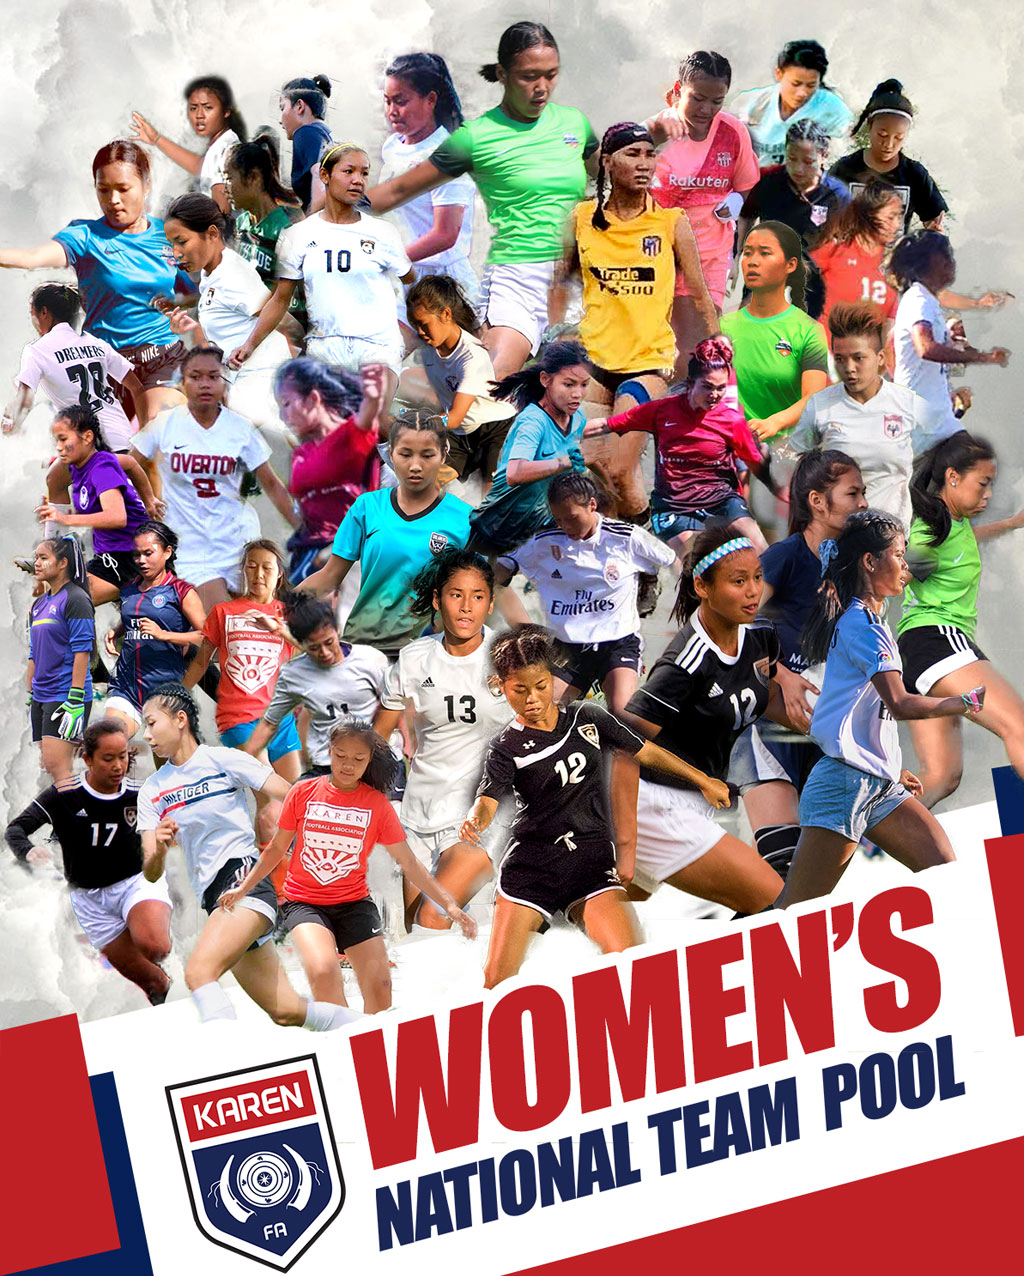 Karen Womens National team Pool 2020